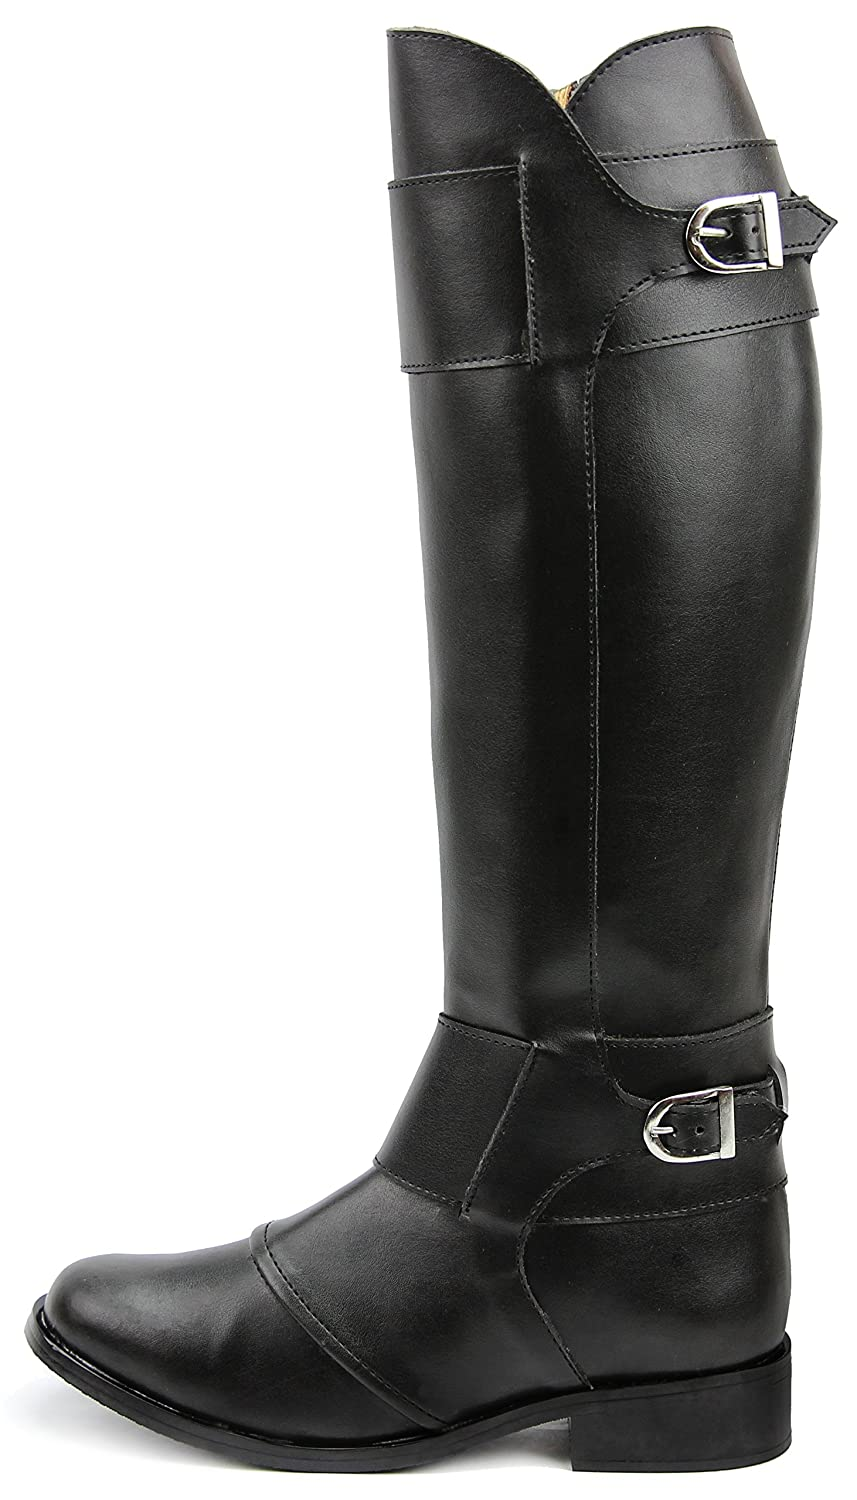 Men's Tall Fashion Knee High Black Leather Riding Boots